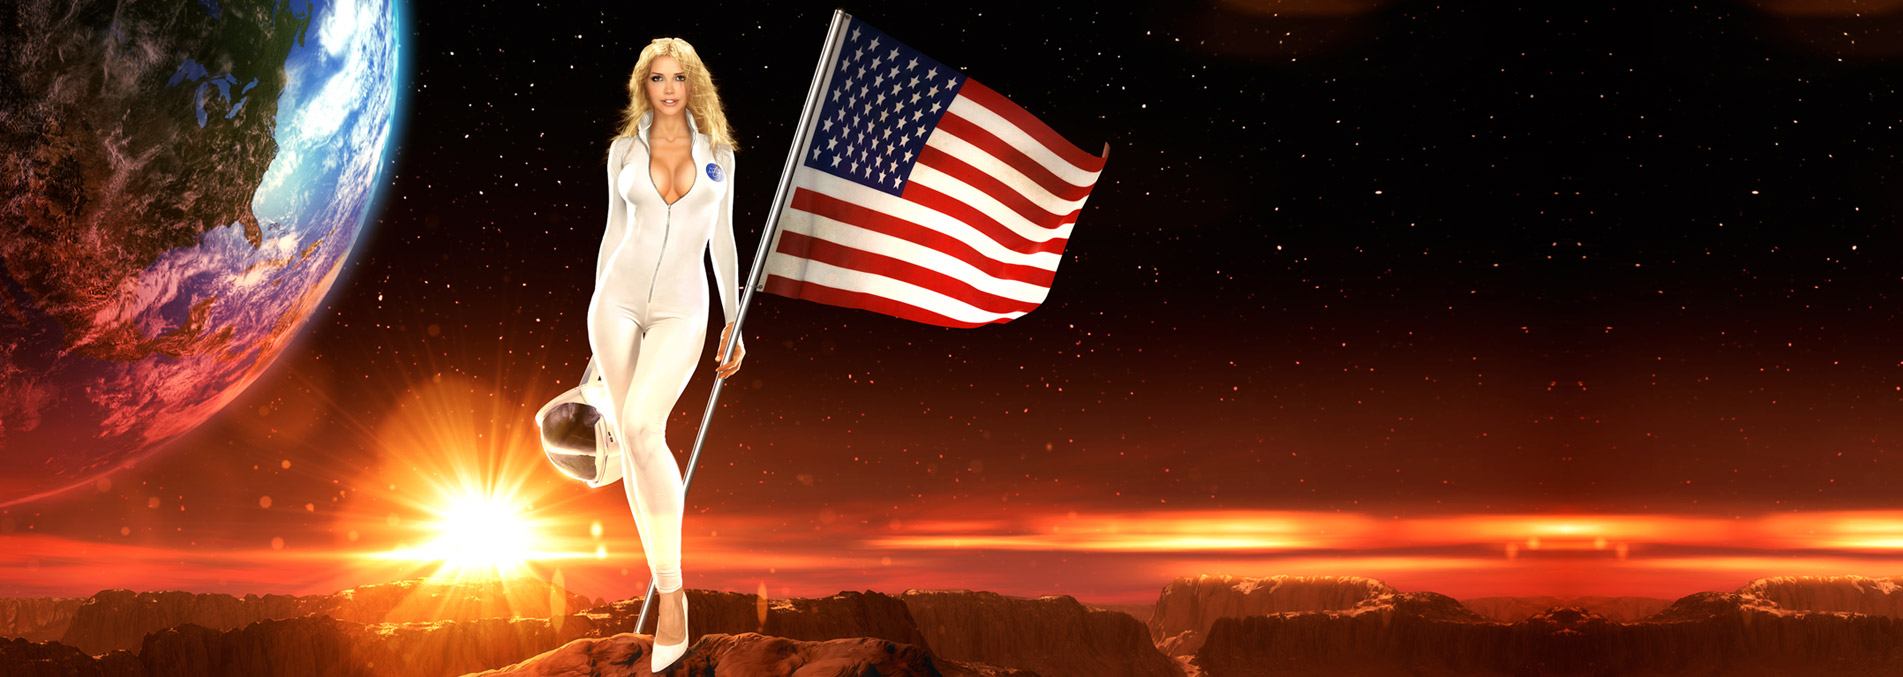 Splash image of a sexy blonde holding the American flag